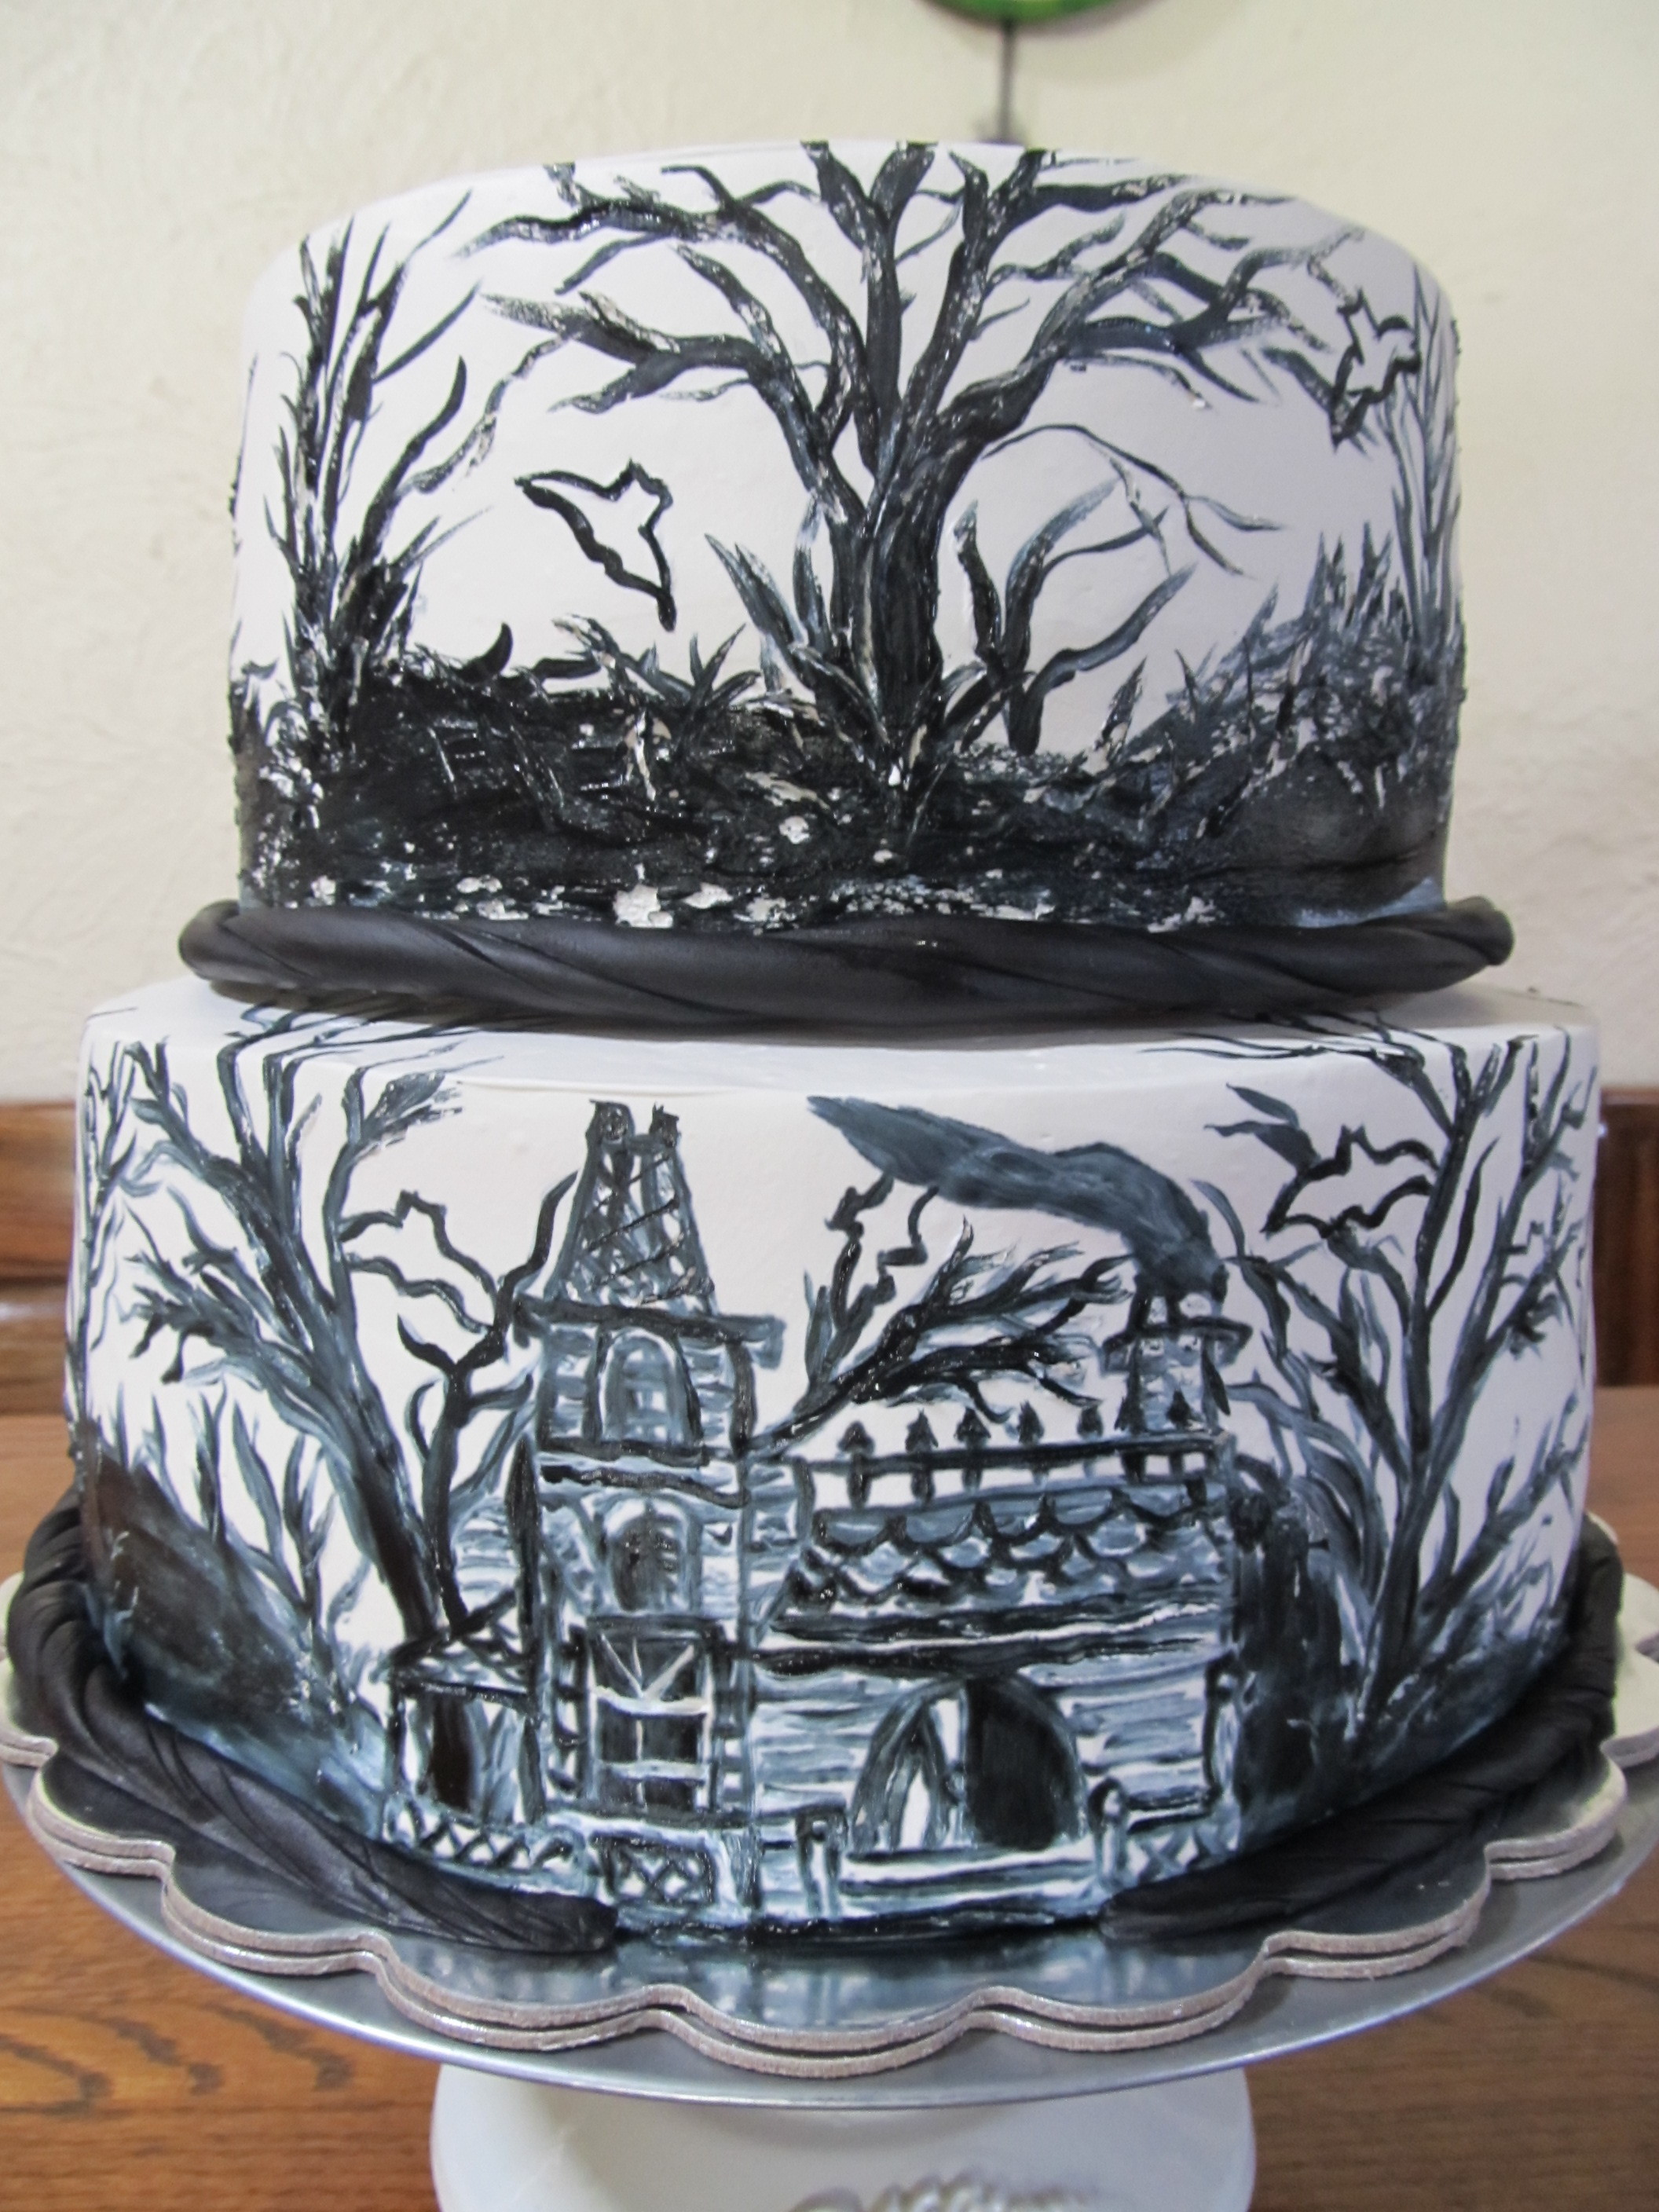 Hand-Painted and Watercolor cakes - As a painter, I also specialize in hand-painted and watercolor cakes! Get the look you want to encapsulate your party's theme in cake form through a painted cake, or accent your design with watercolor effects. See the painted cakes subsection under the birthday cakes tab for more examples!